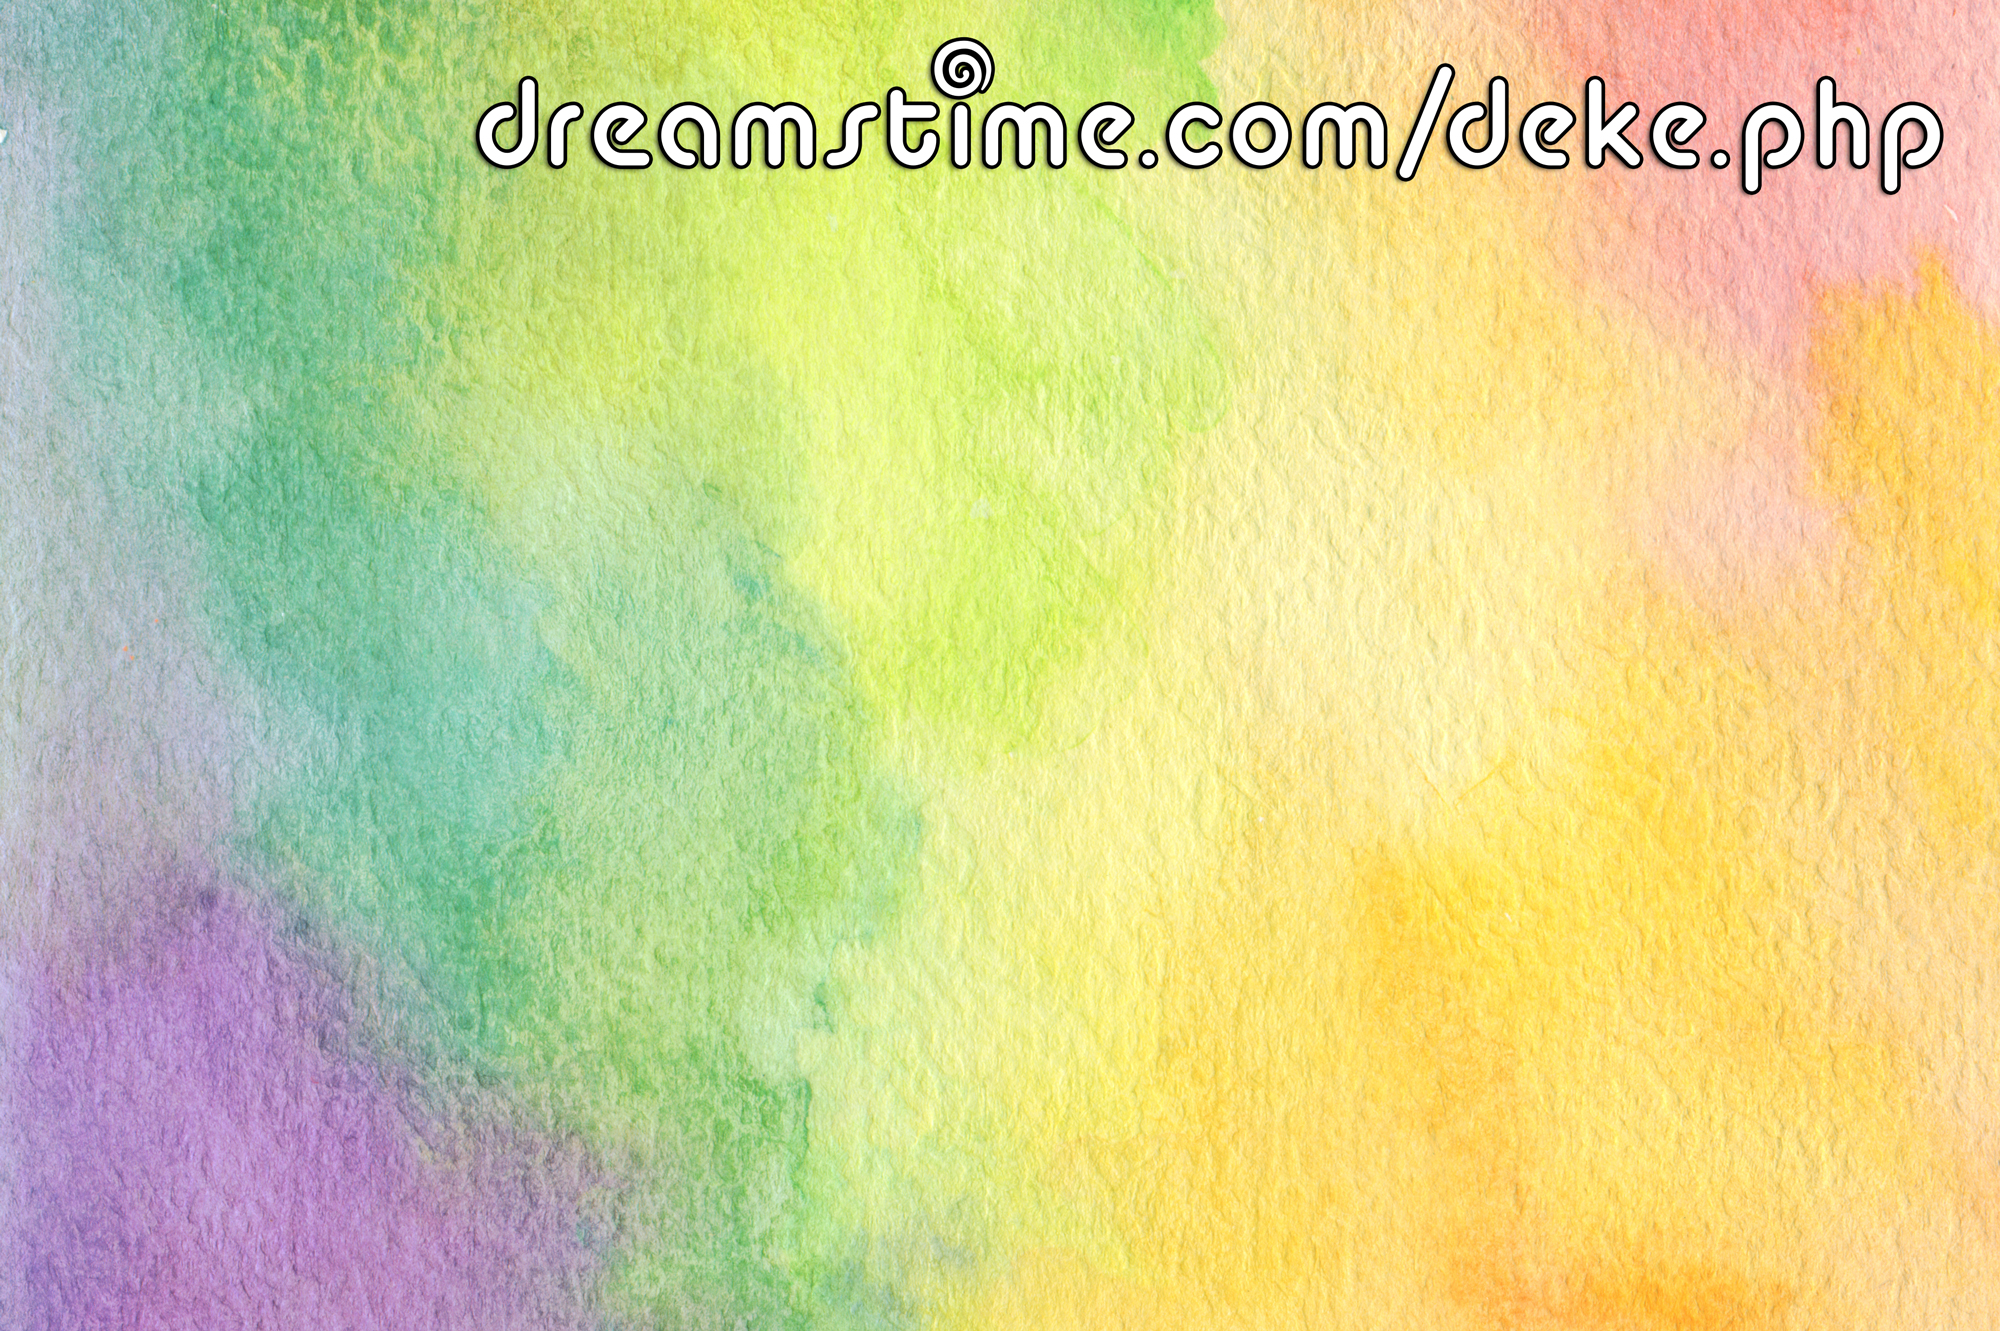 An abstract watercolor from the Dreamstime image library